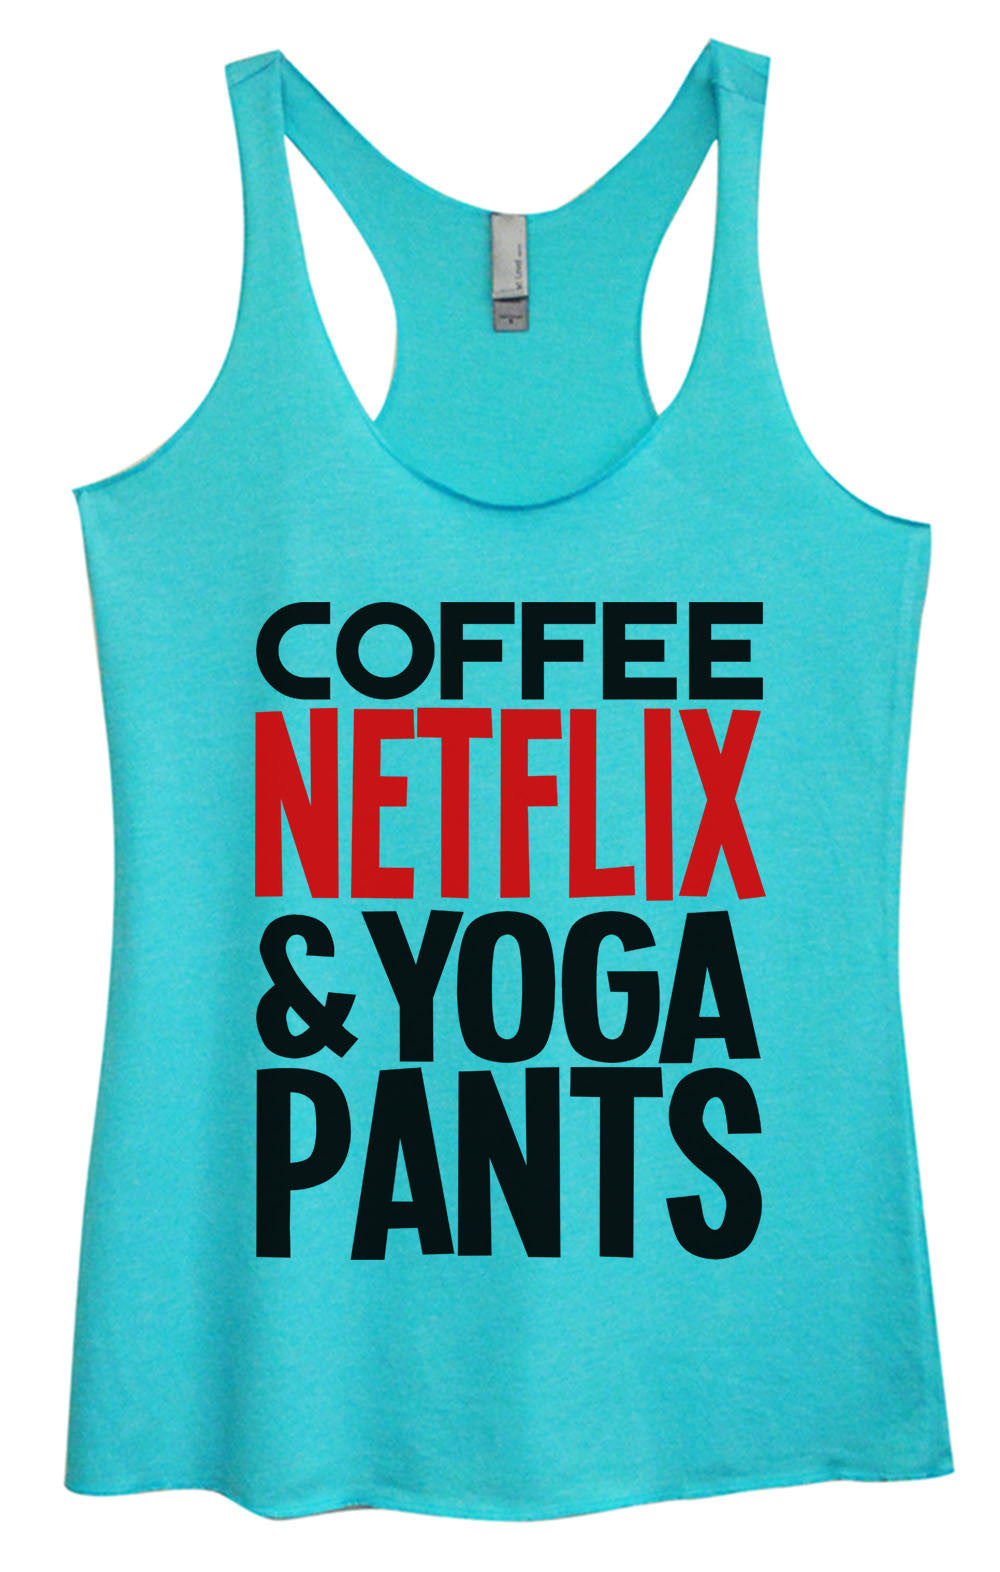 Womens Fashion Triblend Tank Top - Coffee Netflix & Yoga Pants - Tri-995 - Funny Shirts Tank Tops Burnouts and Triblends  - 3